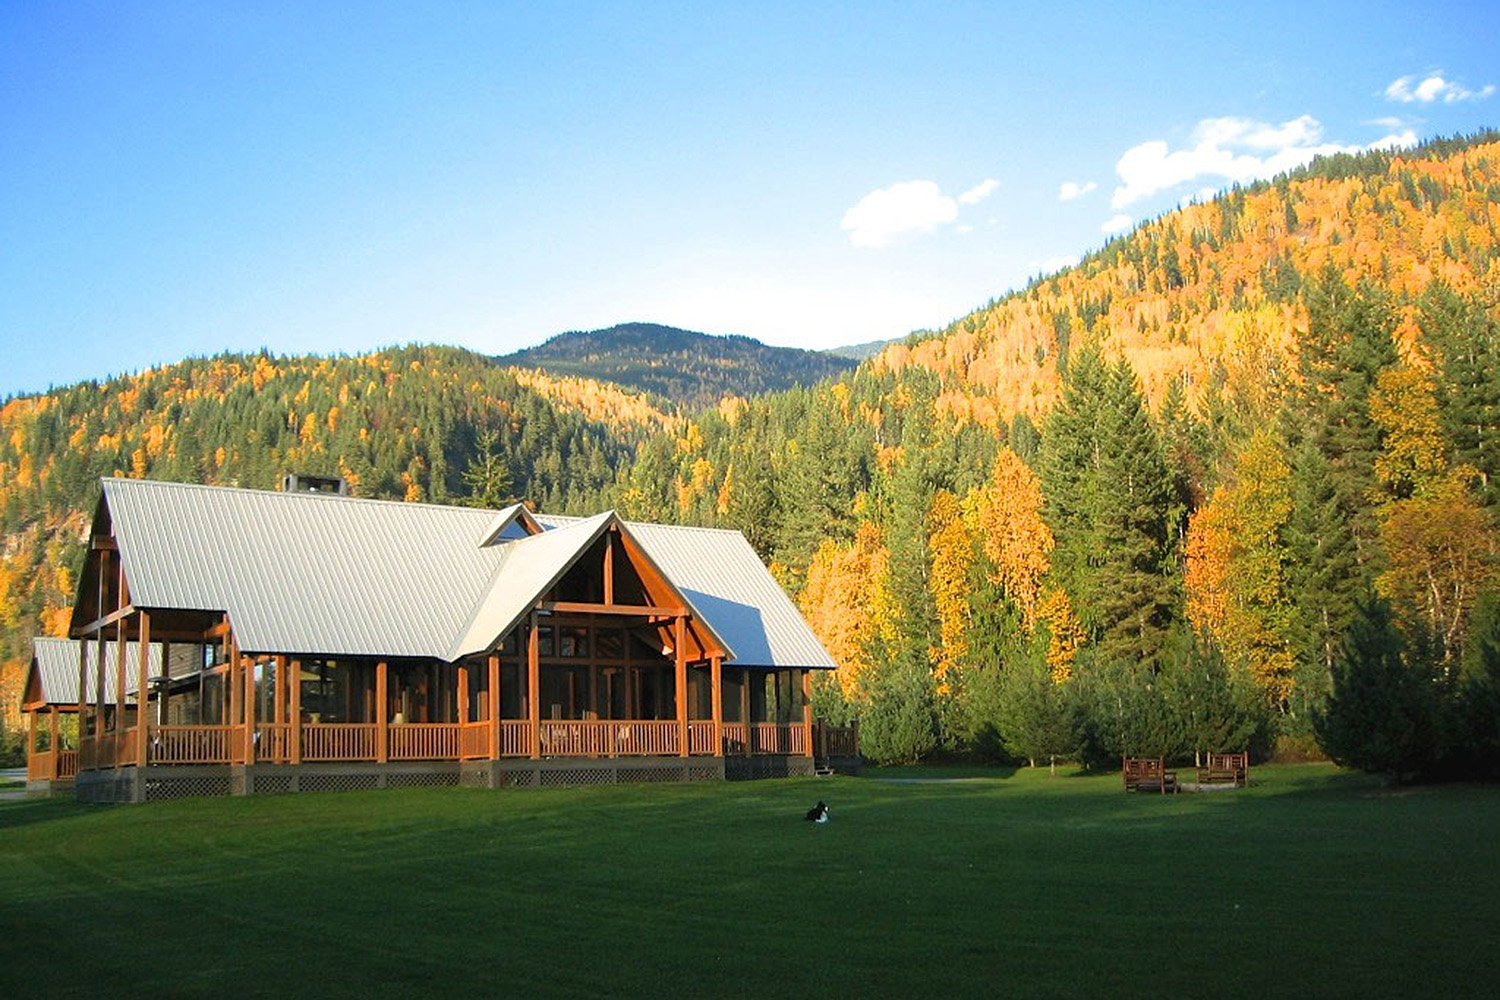 The chic lodge overlooking the Columbia River Valley.